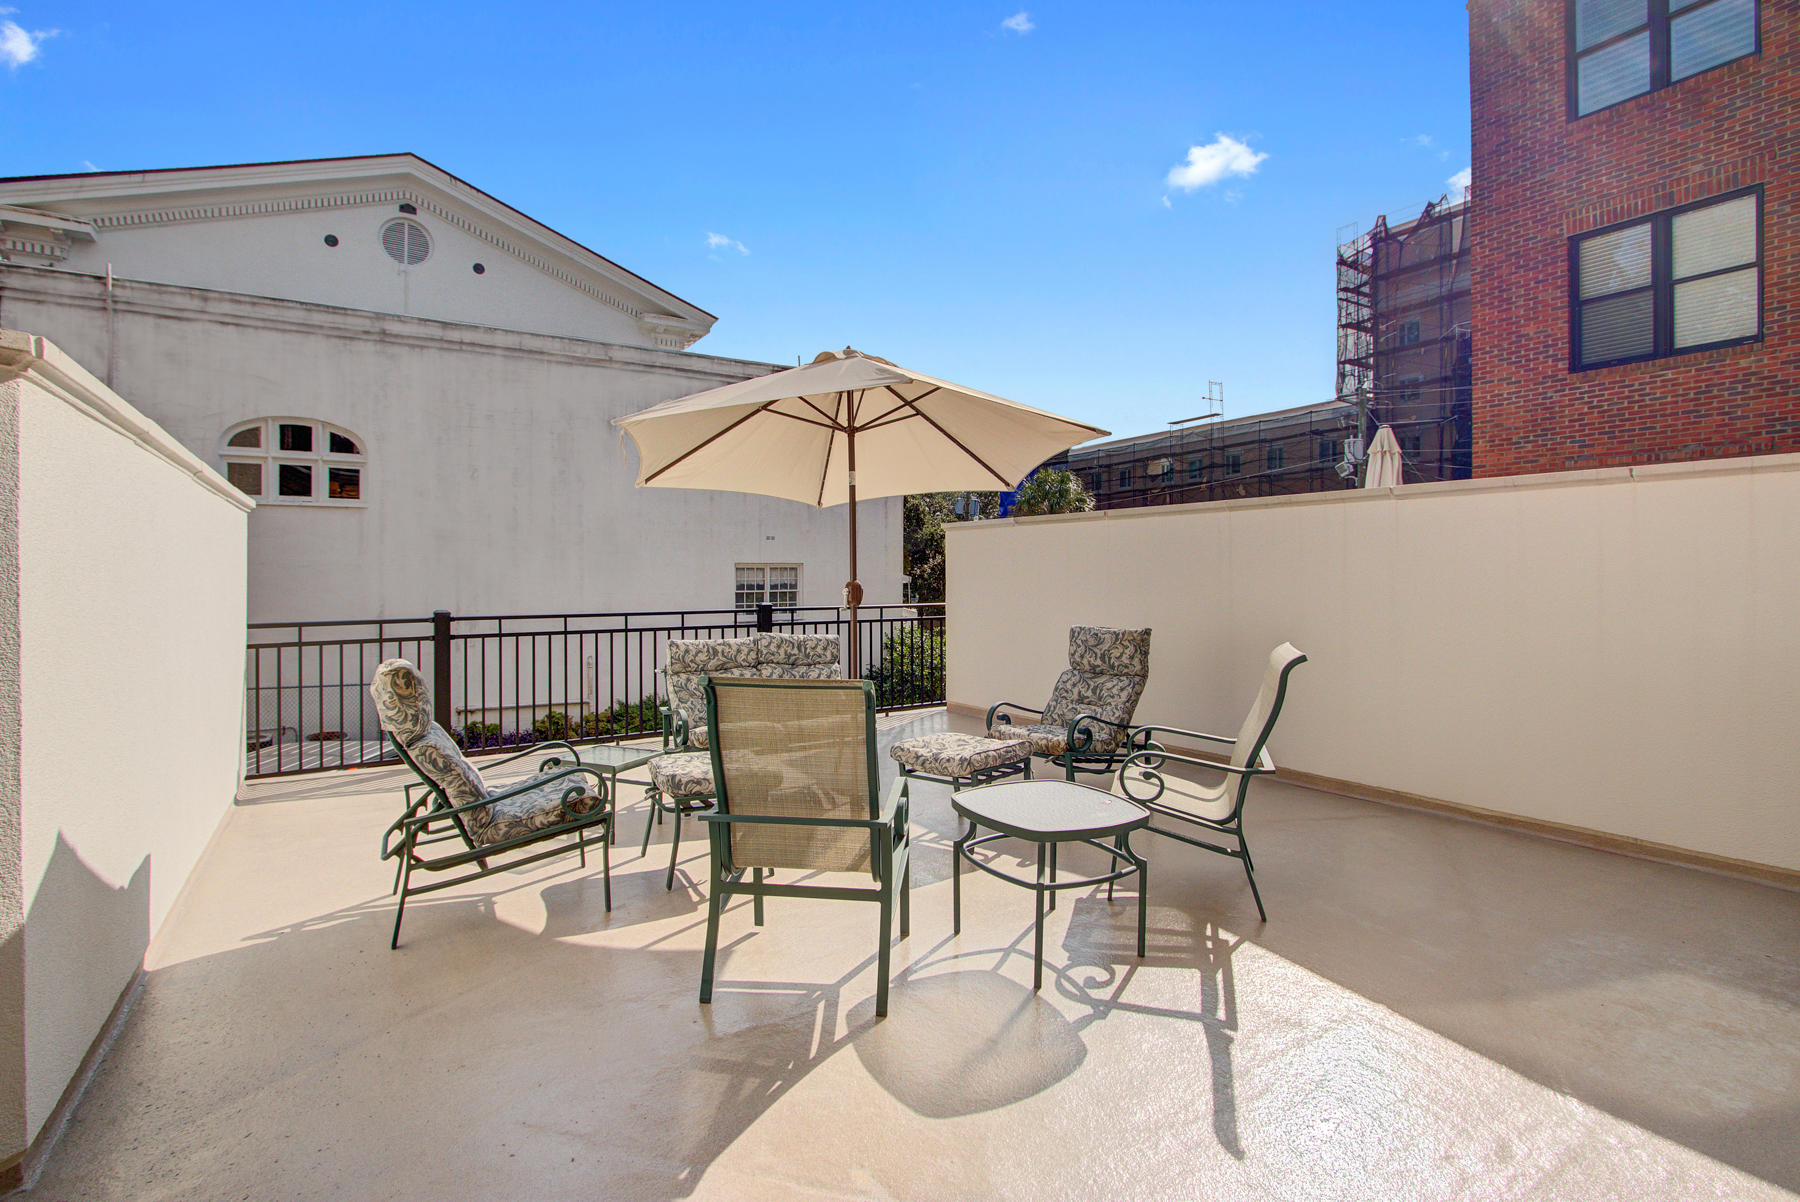 George And Society Condos For Sale - 76 Society, Charleston, SC - 22